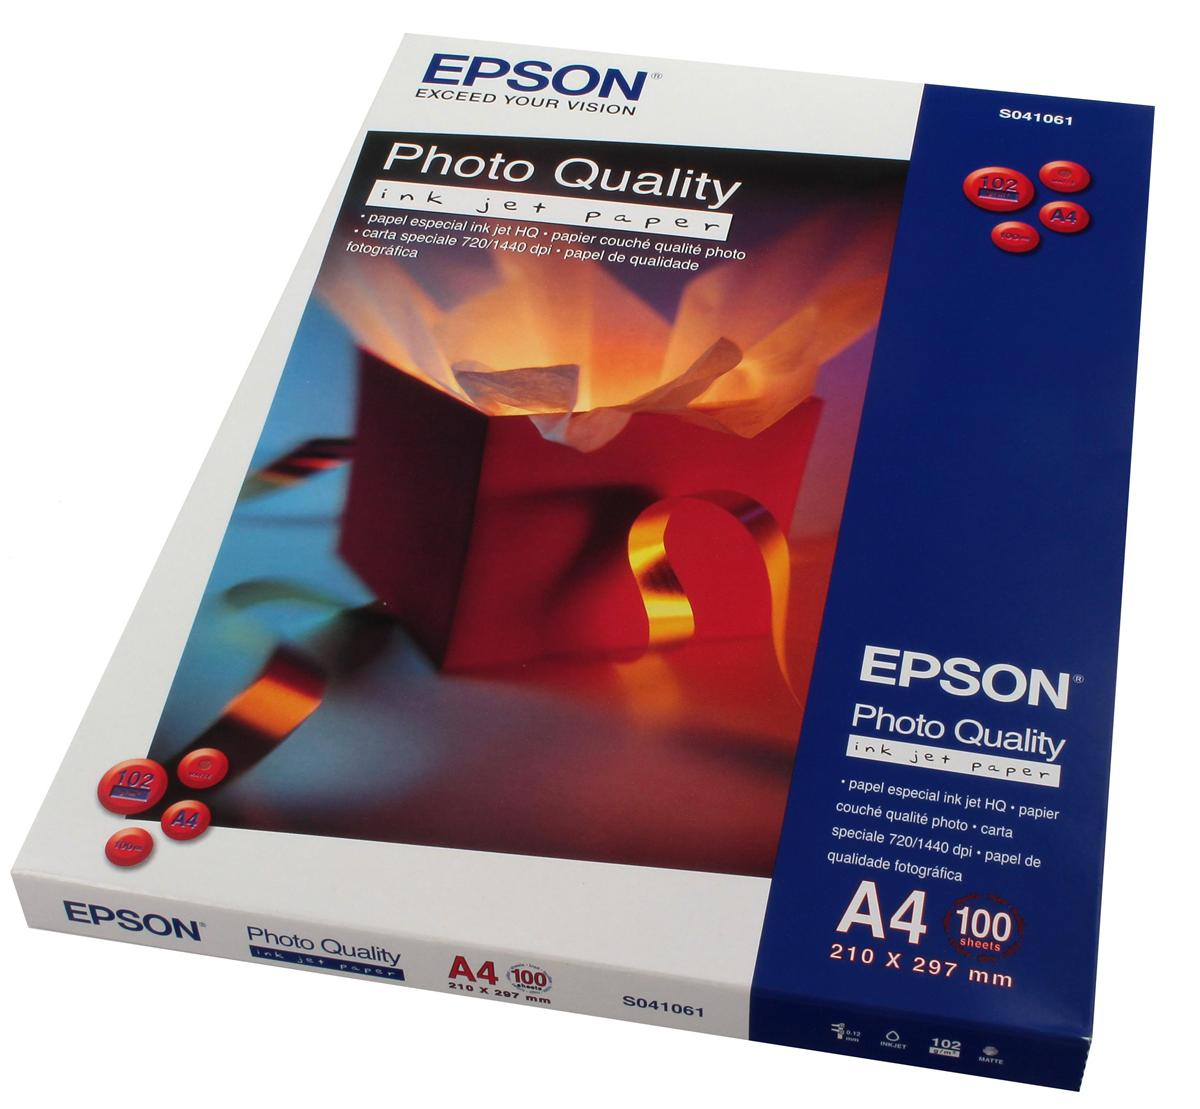 Epson Photo Quality Inkjet Paper Matt 104gsm Max.1440dpi A4 Ref S041061 [100 Sheets]